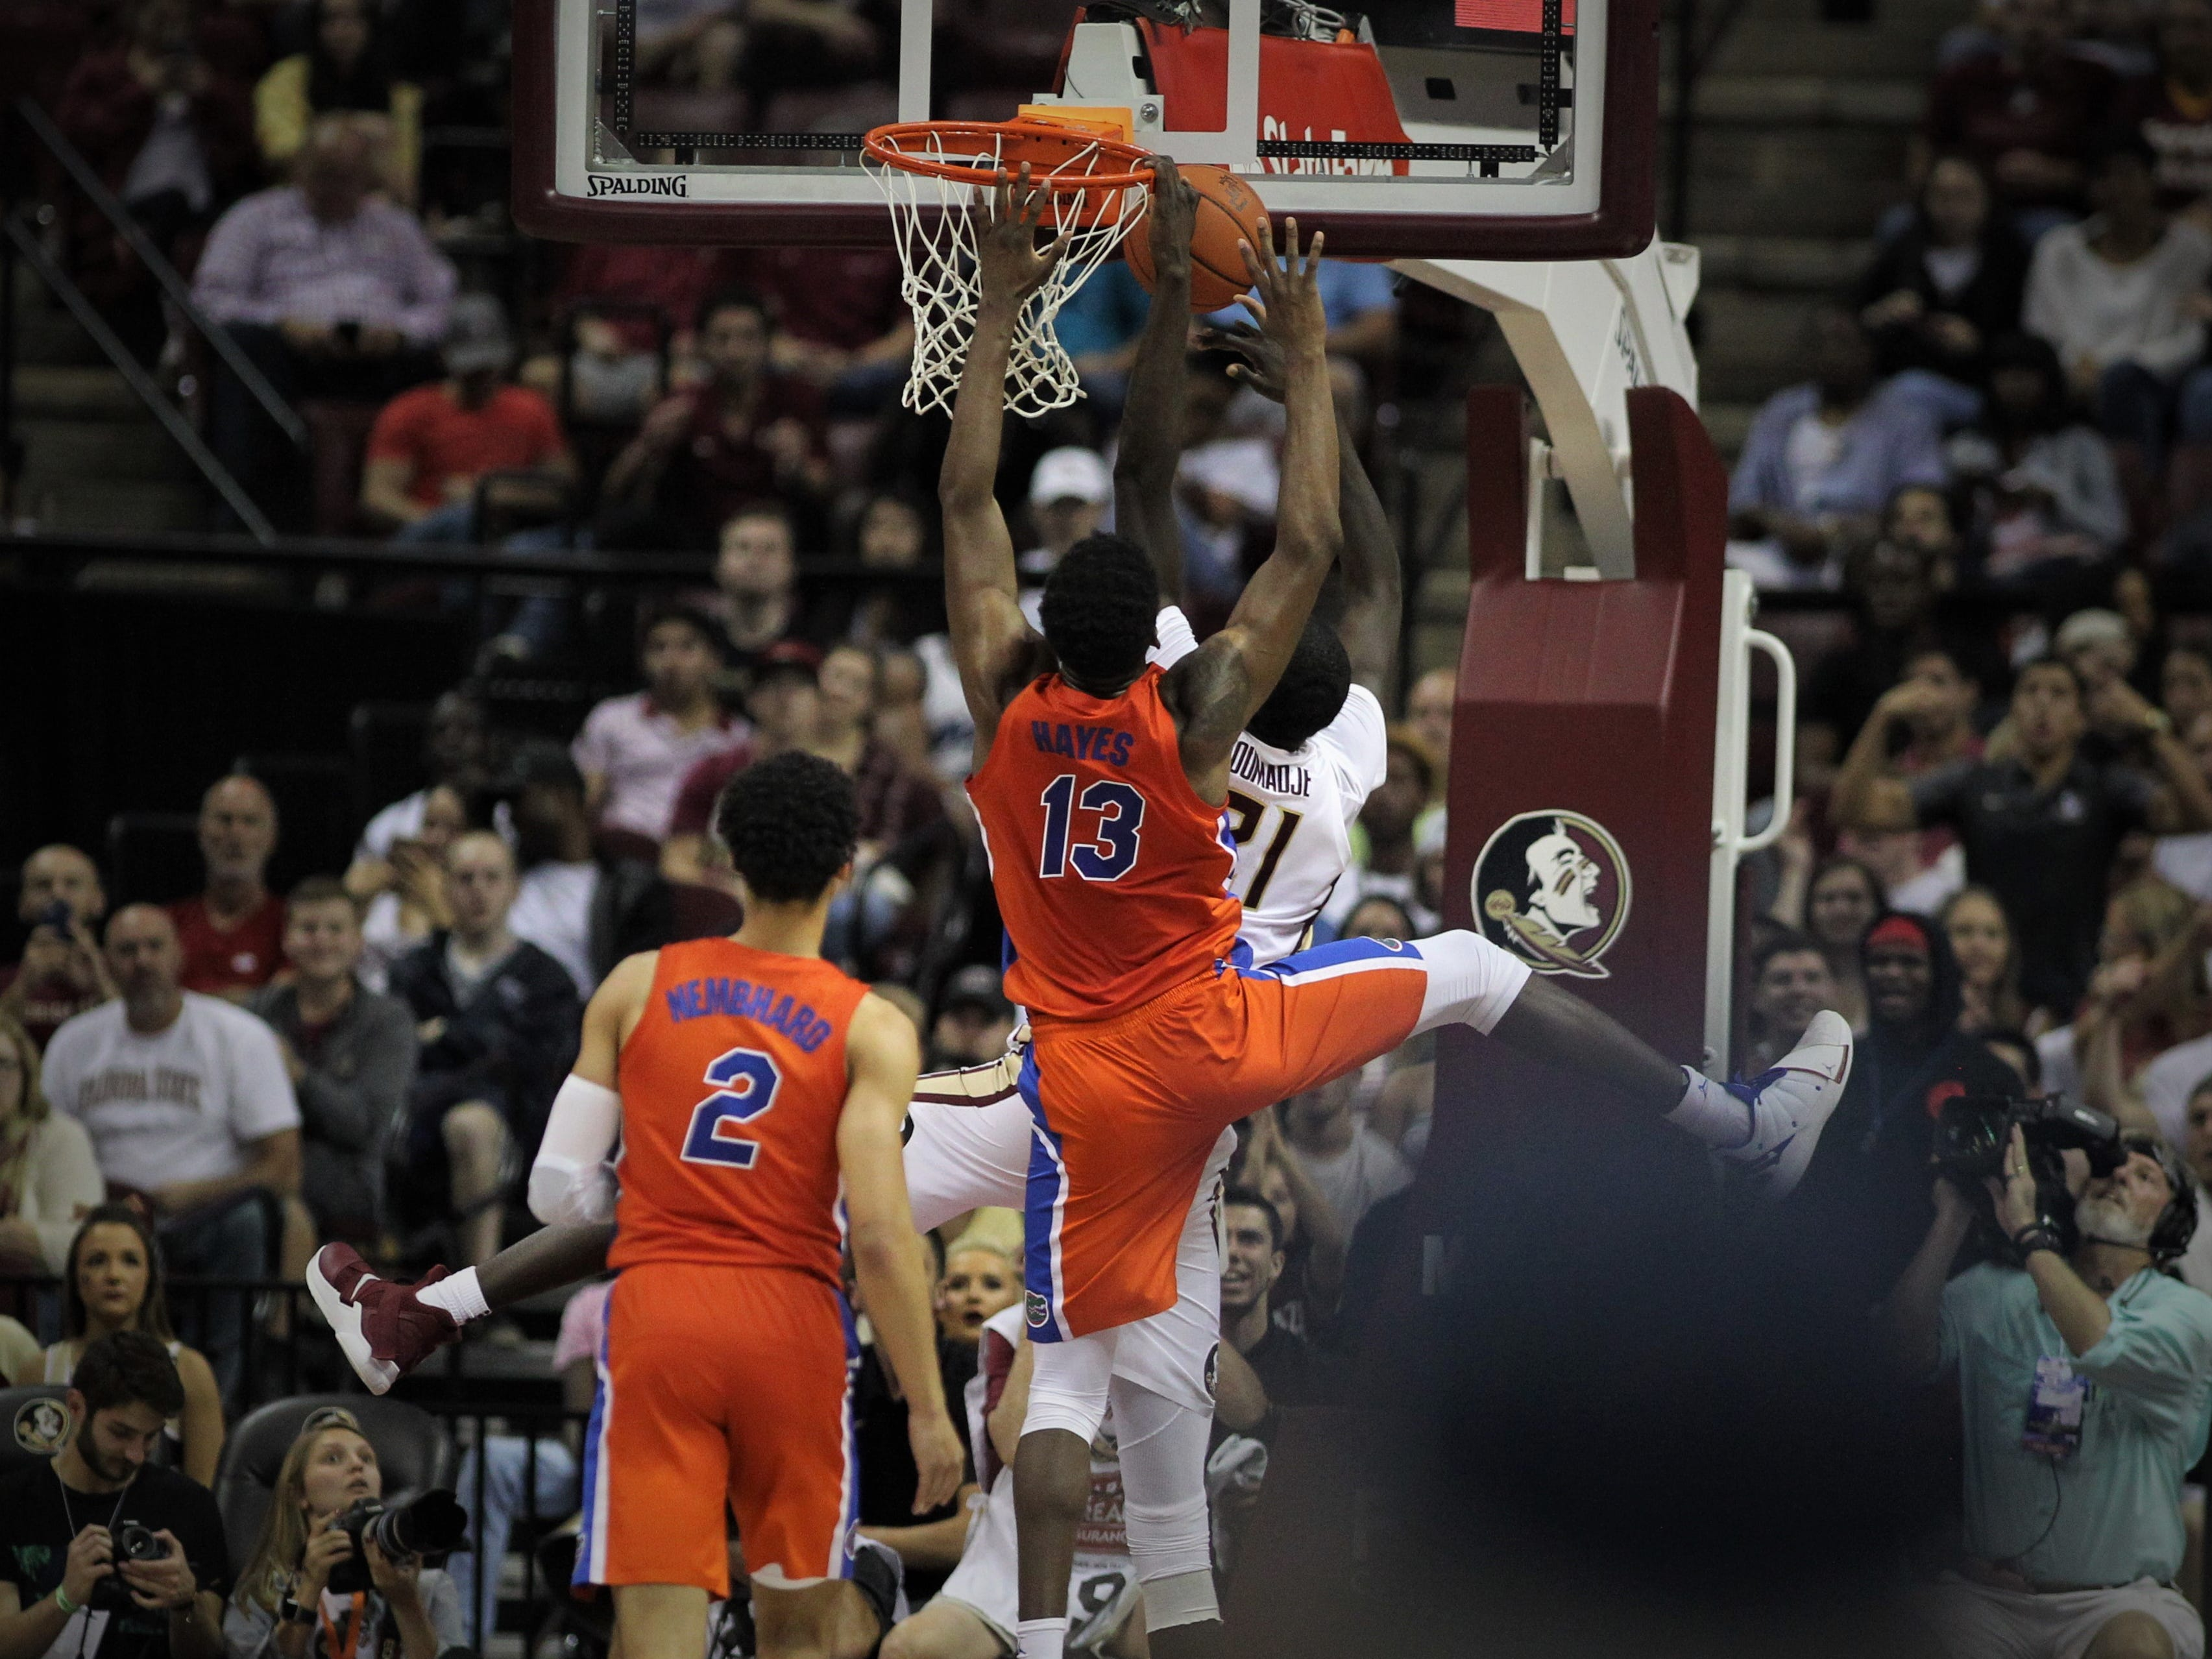 Florida State's Christ Koumadje has a shot blocked under the basket by Florida's Kevarrius Hayes during the Sunshine Showdown game Tuesday at the Tucker Civic Center.